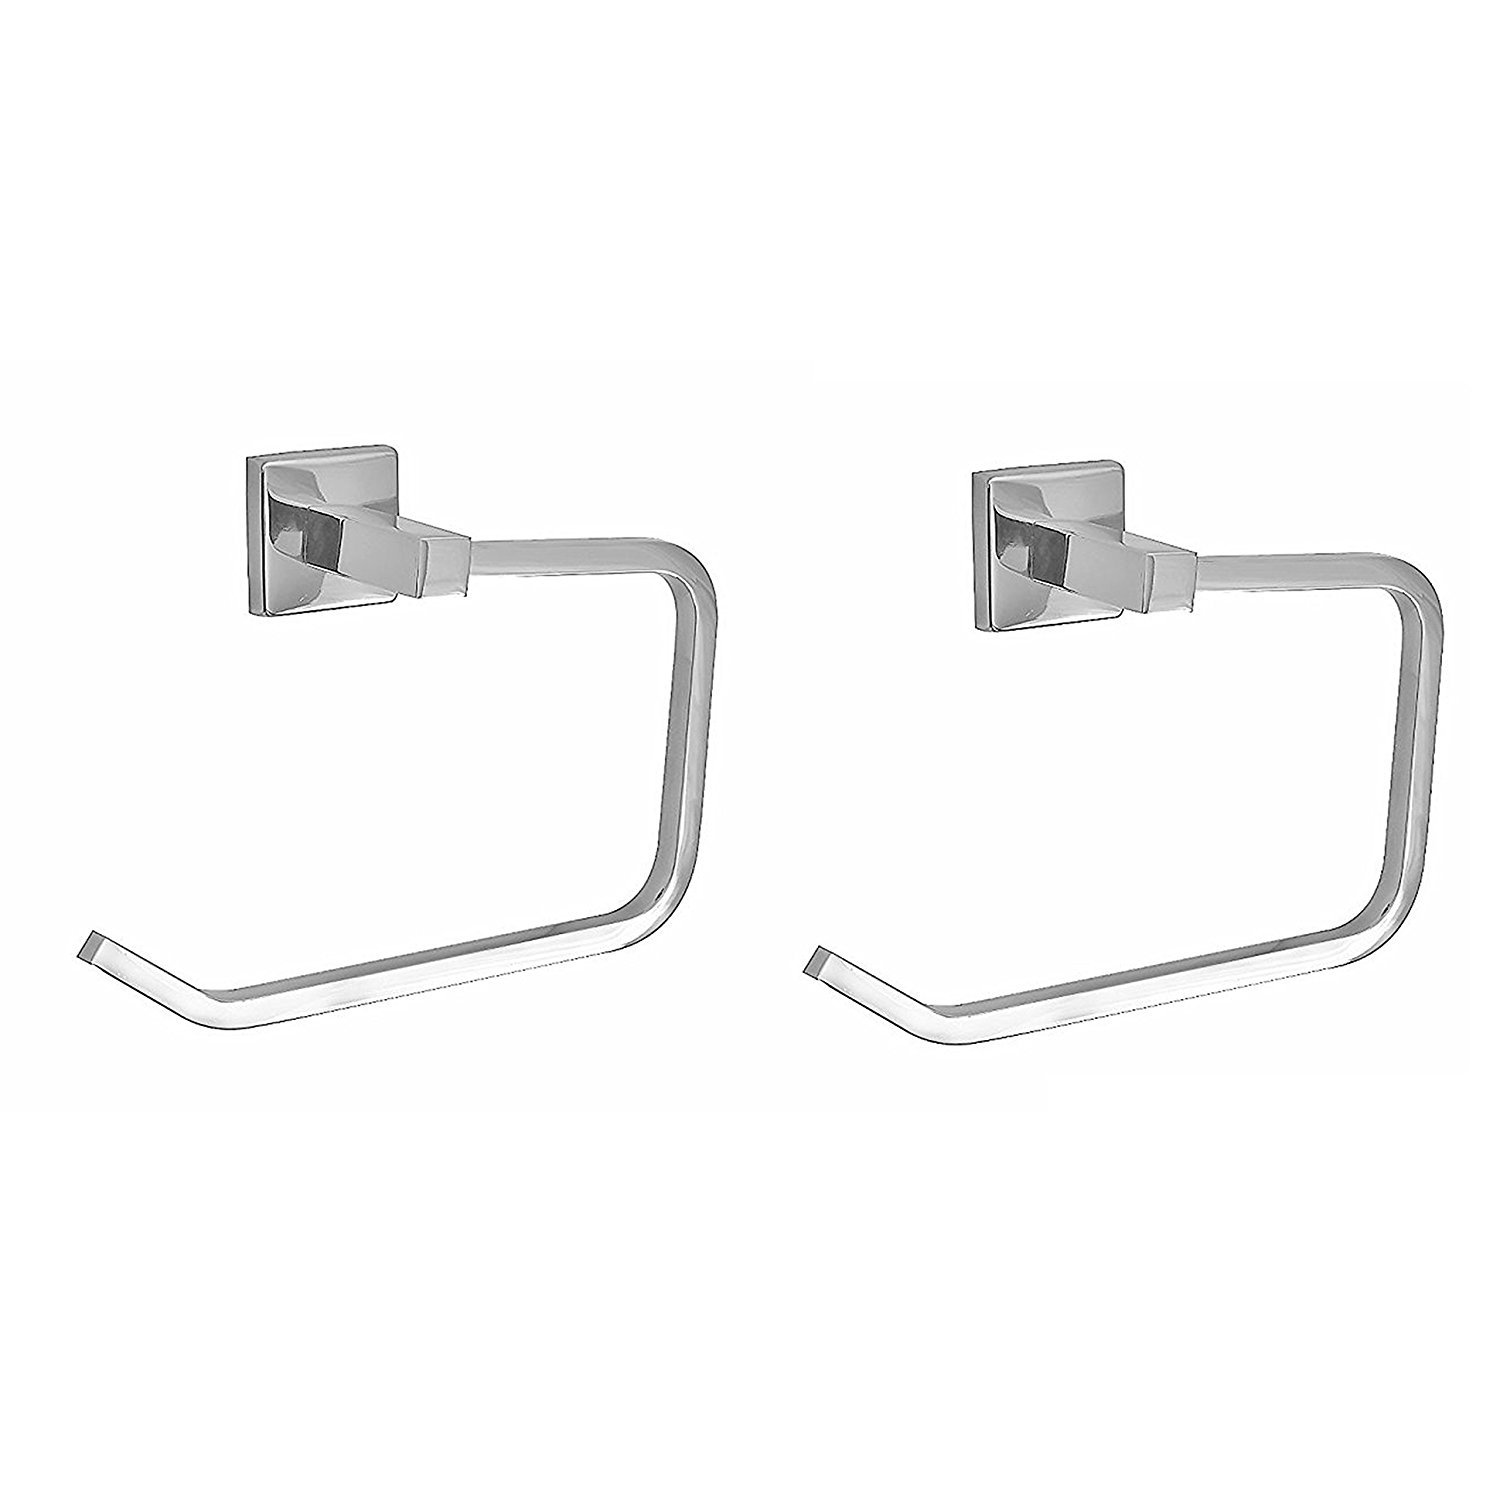 Klaxon 102 Kristal Steel Towel Ring/Holder (2 Pieces) (B015GXTILC) Amazon Price History, Amazon Price Tracker